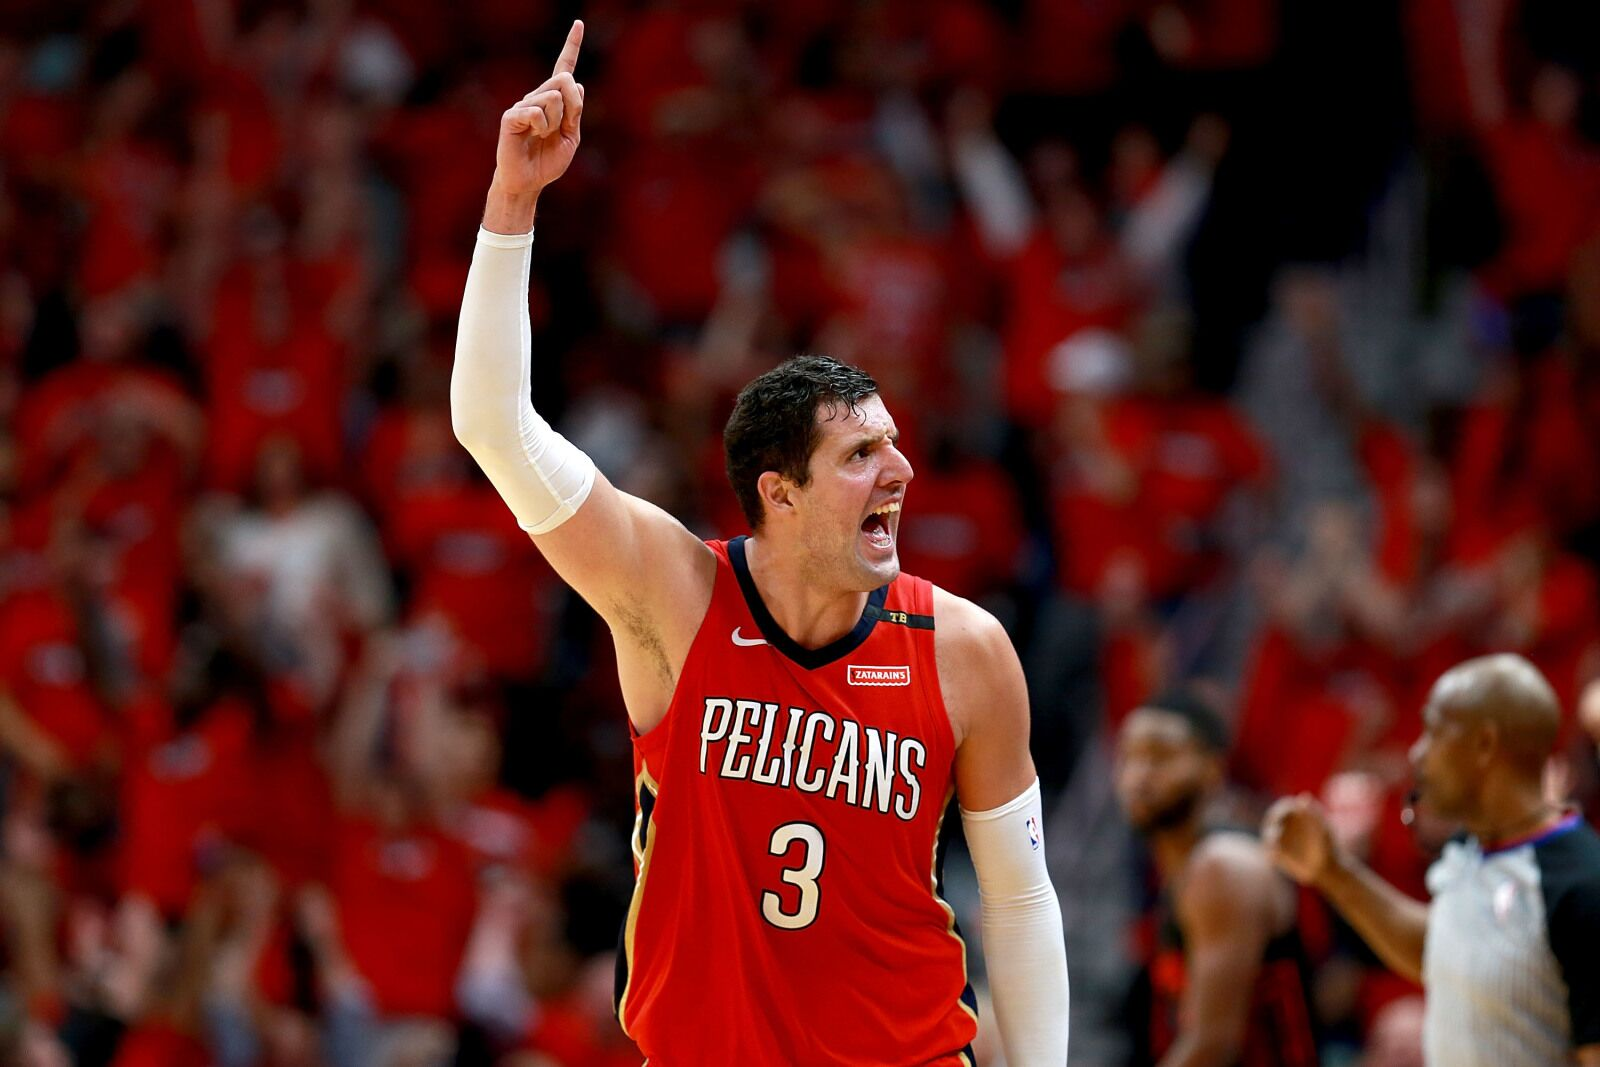 Pelicans Vs Trail Blazers Detail: New Orleans Pelicans: Nikola Mirotic Off To A Hot Start In